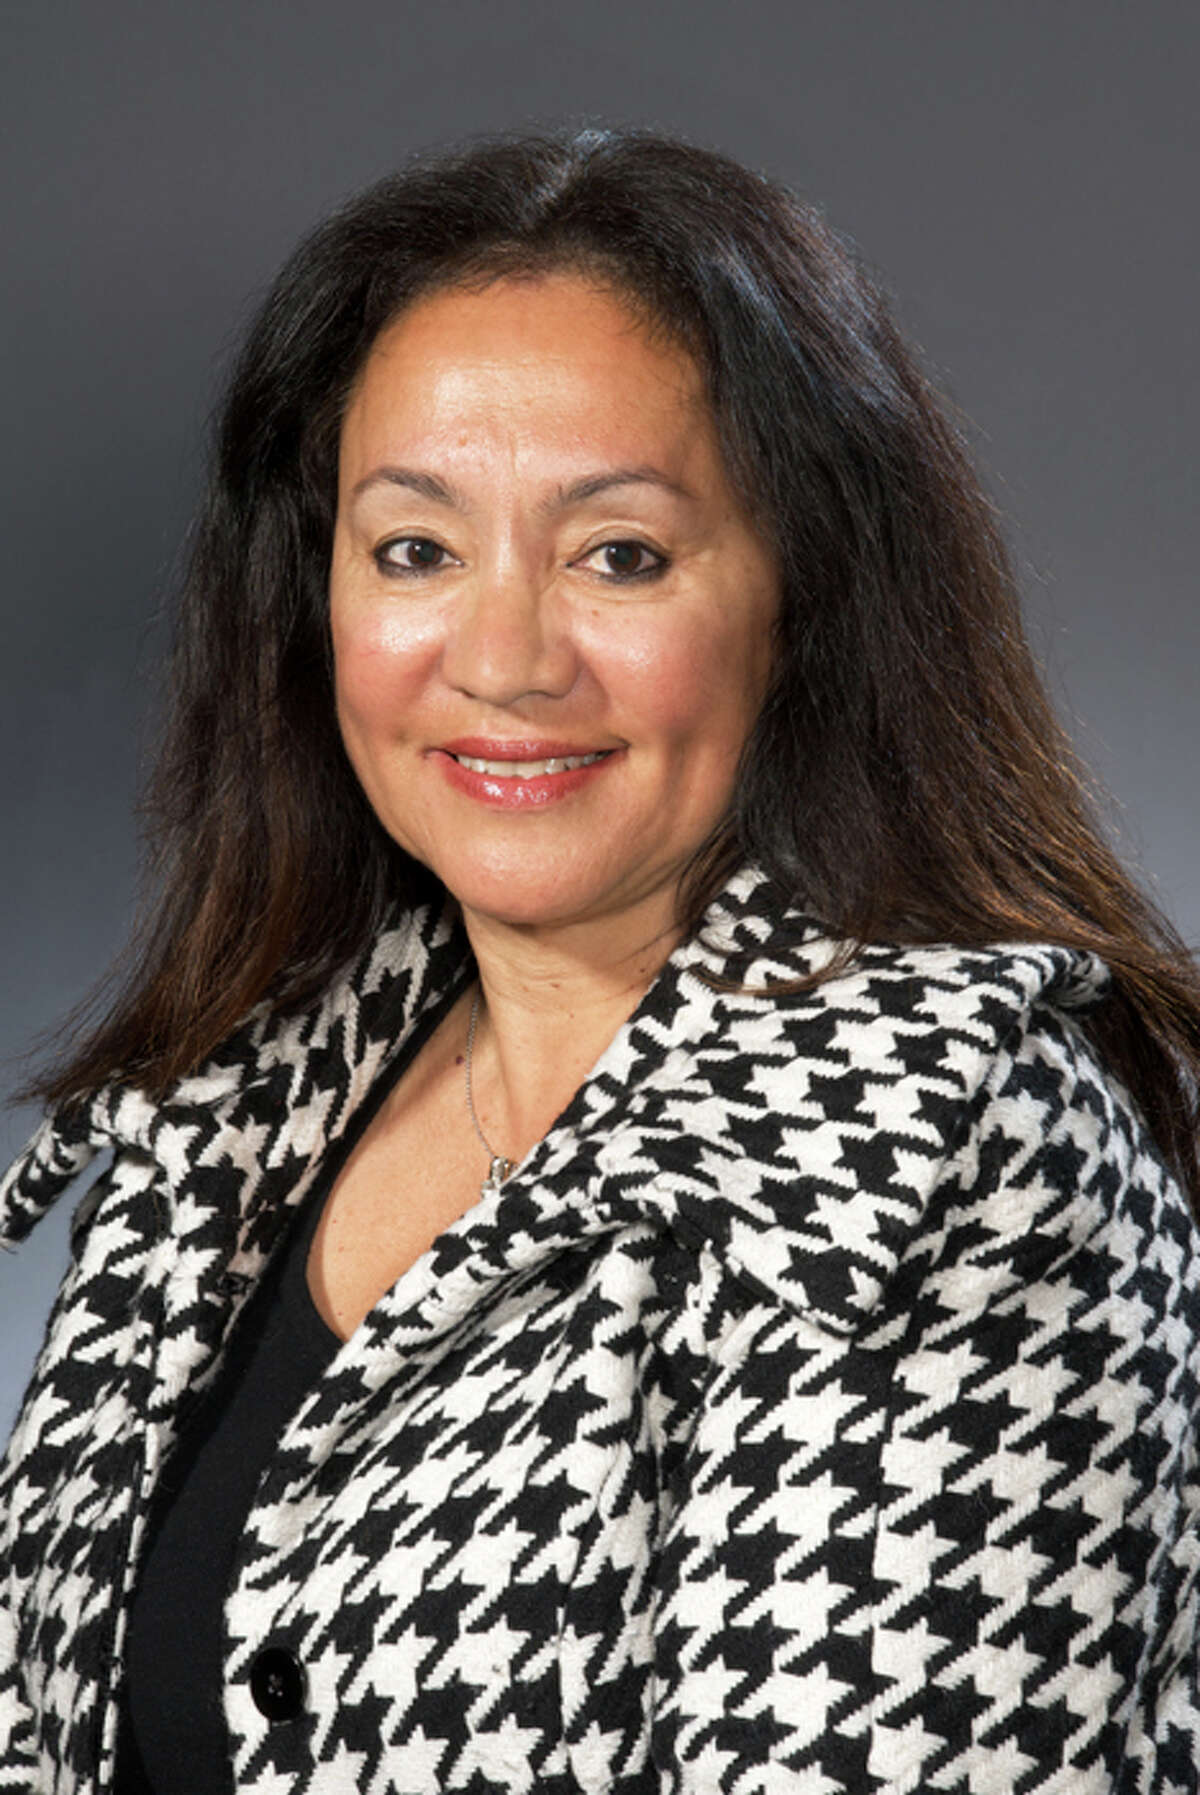 Betty Rosa resigned Tuesday as the chancellor of the state Board of Regents to become the interim commissioner of the state's Department of Education.